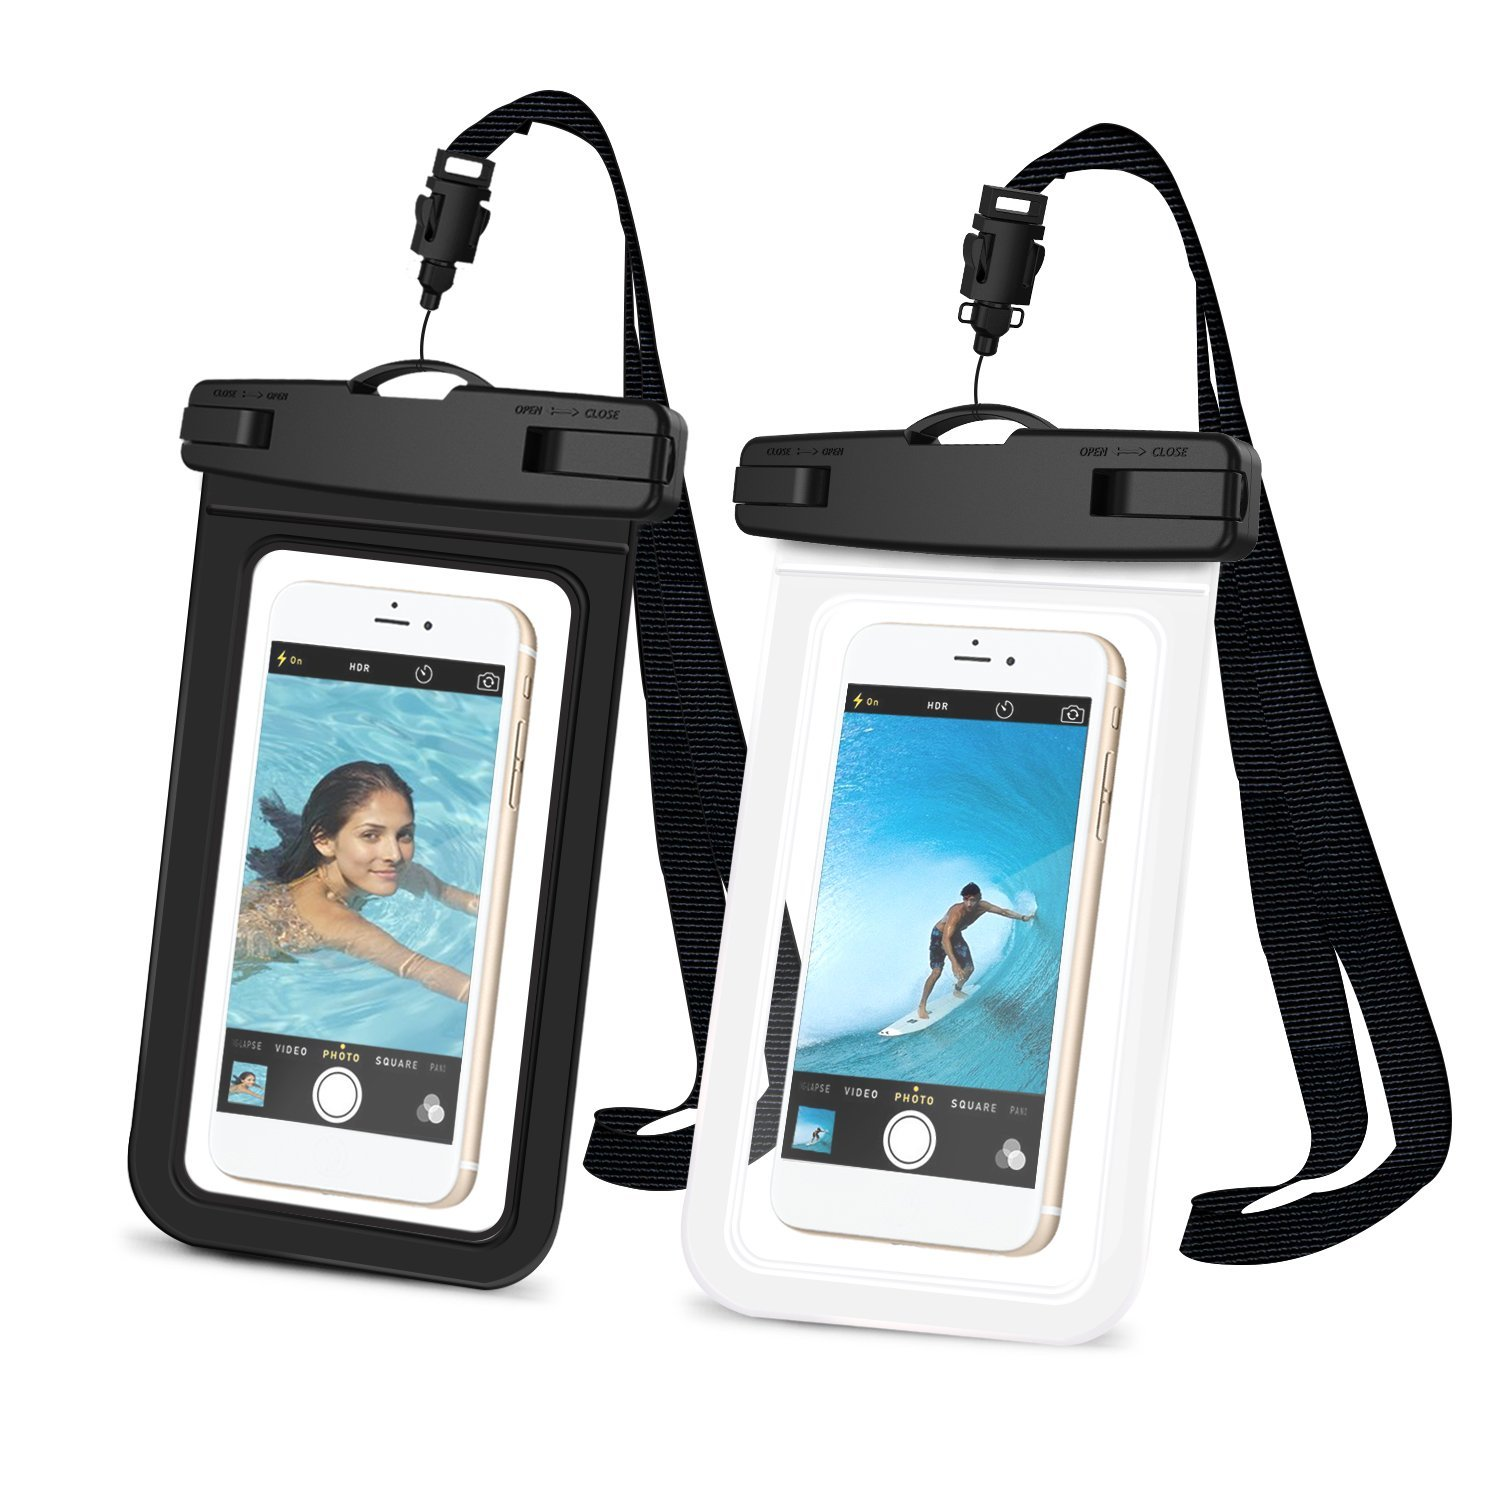 FYLINA 2 Pack Universal Waterproof Case Cellphone Dry Bag Pouch with Neck Strap Lanyard for iPhone 7 7 Plus 6 6s Plus SE 5s Samsung Galaxy S6 S7 edge S8 S8 Plus and Others